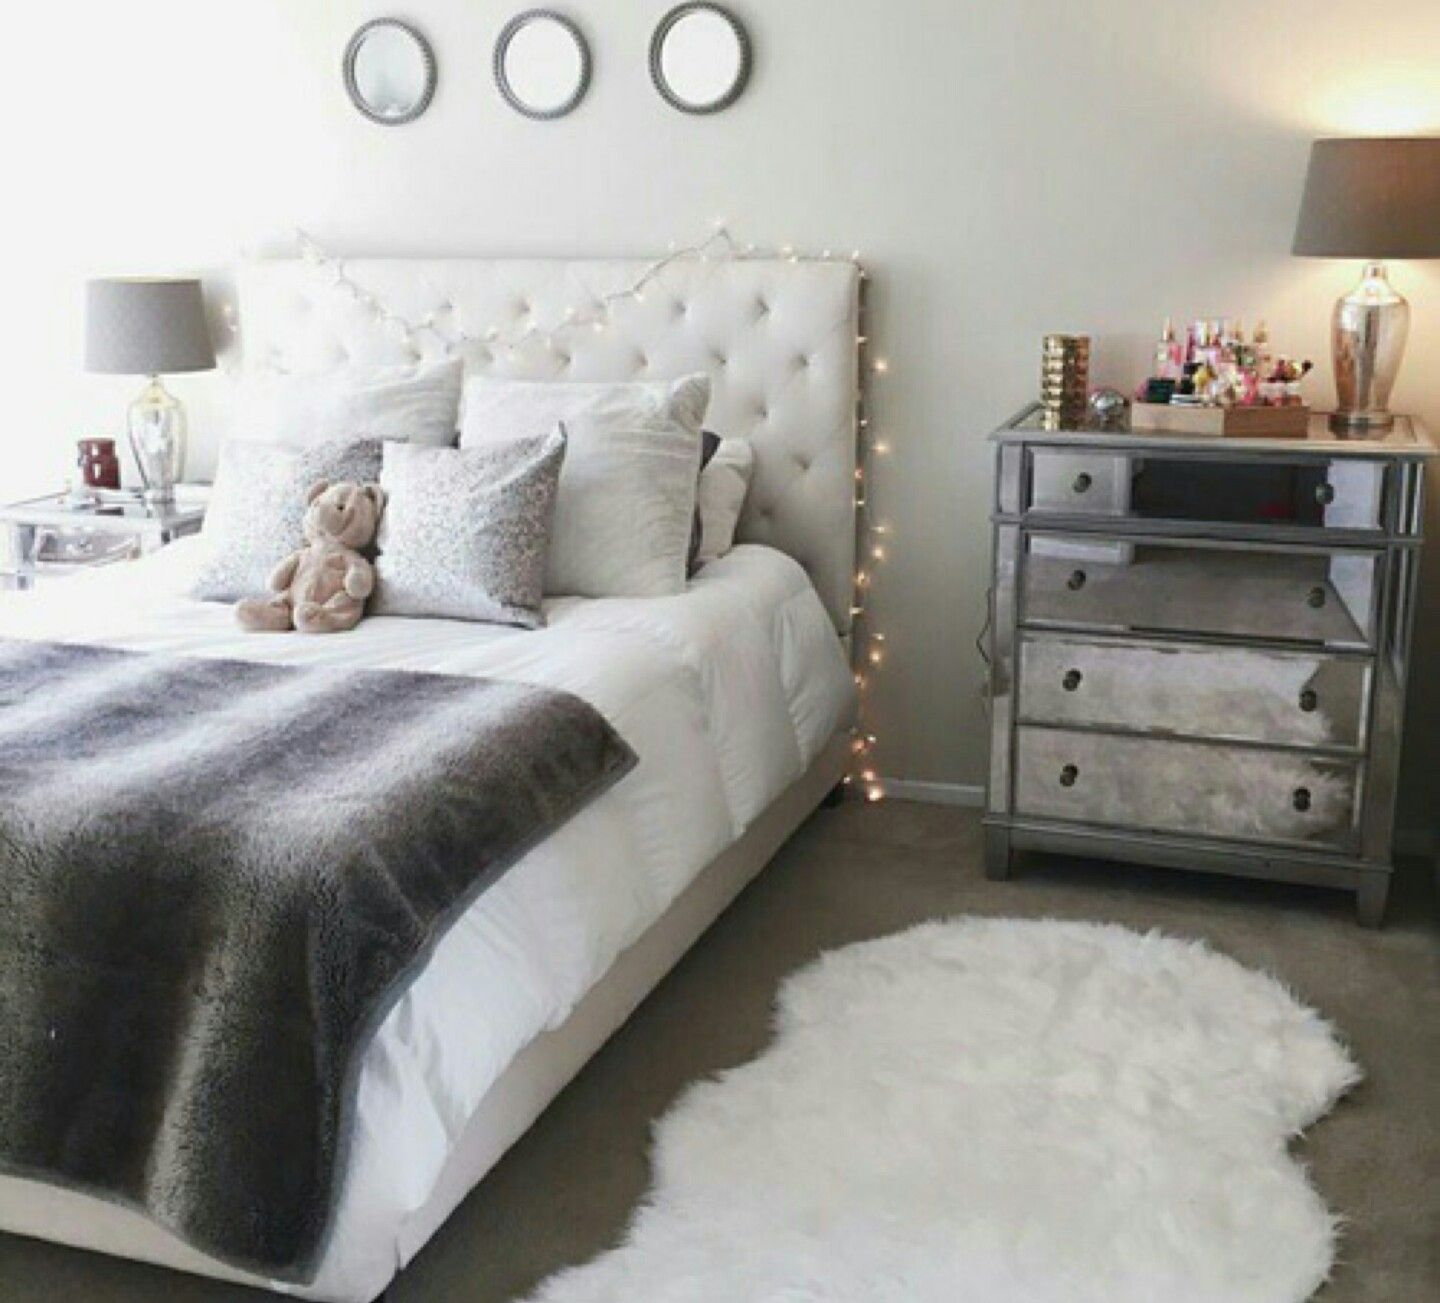 pin von audrey pearson auf home living pinterest traumzimmer und tr ume. Black Bedroom Furniture Sets. Home Design Ideas